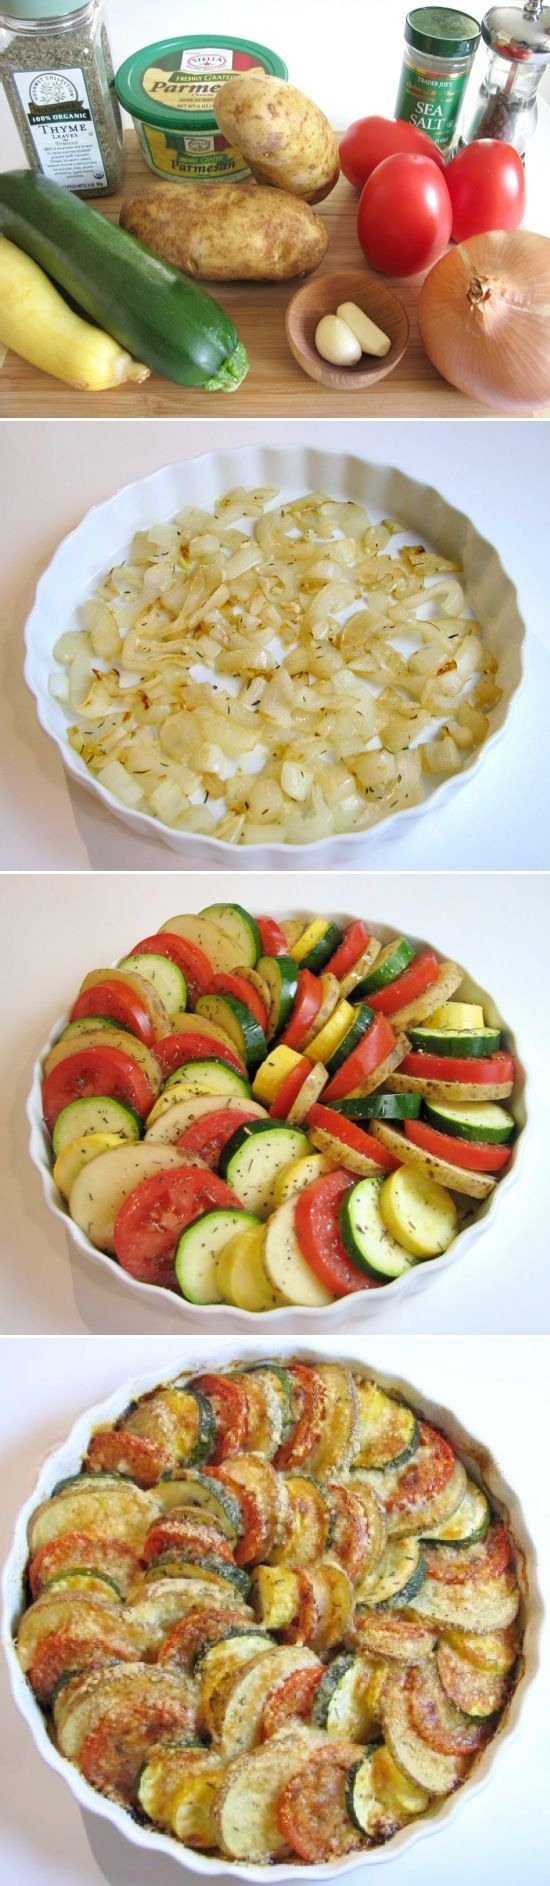 Parmesan Vegetable Spiral: a bed of onions is topped by a medley of veggies (tomatoes, potatoes, squash & zucchini) then drizzled w EVOO, sprinkled w Parmesan cheese & roasted to perfection. I fell in love with this dish years ago and have been looking for the recipe ever since! Yay!